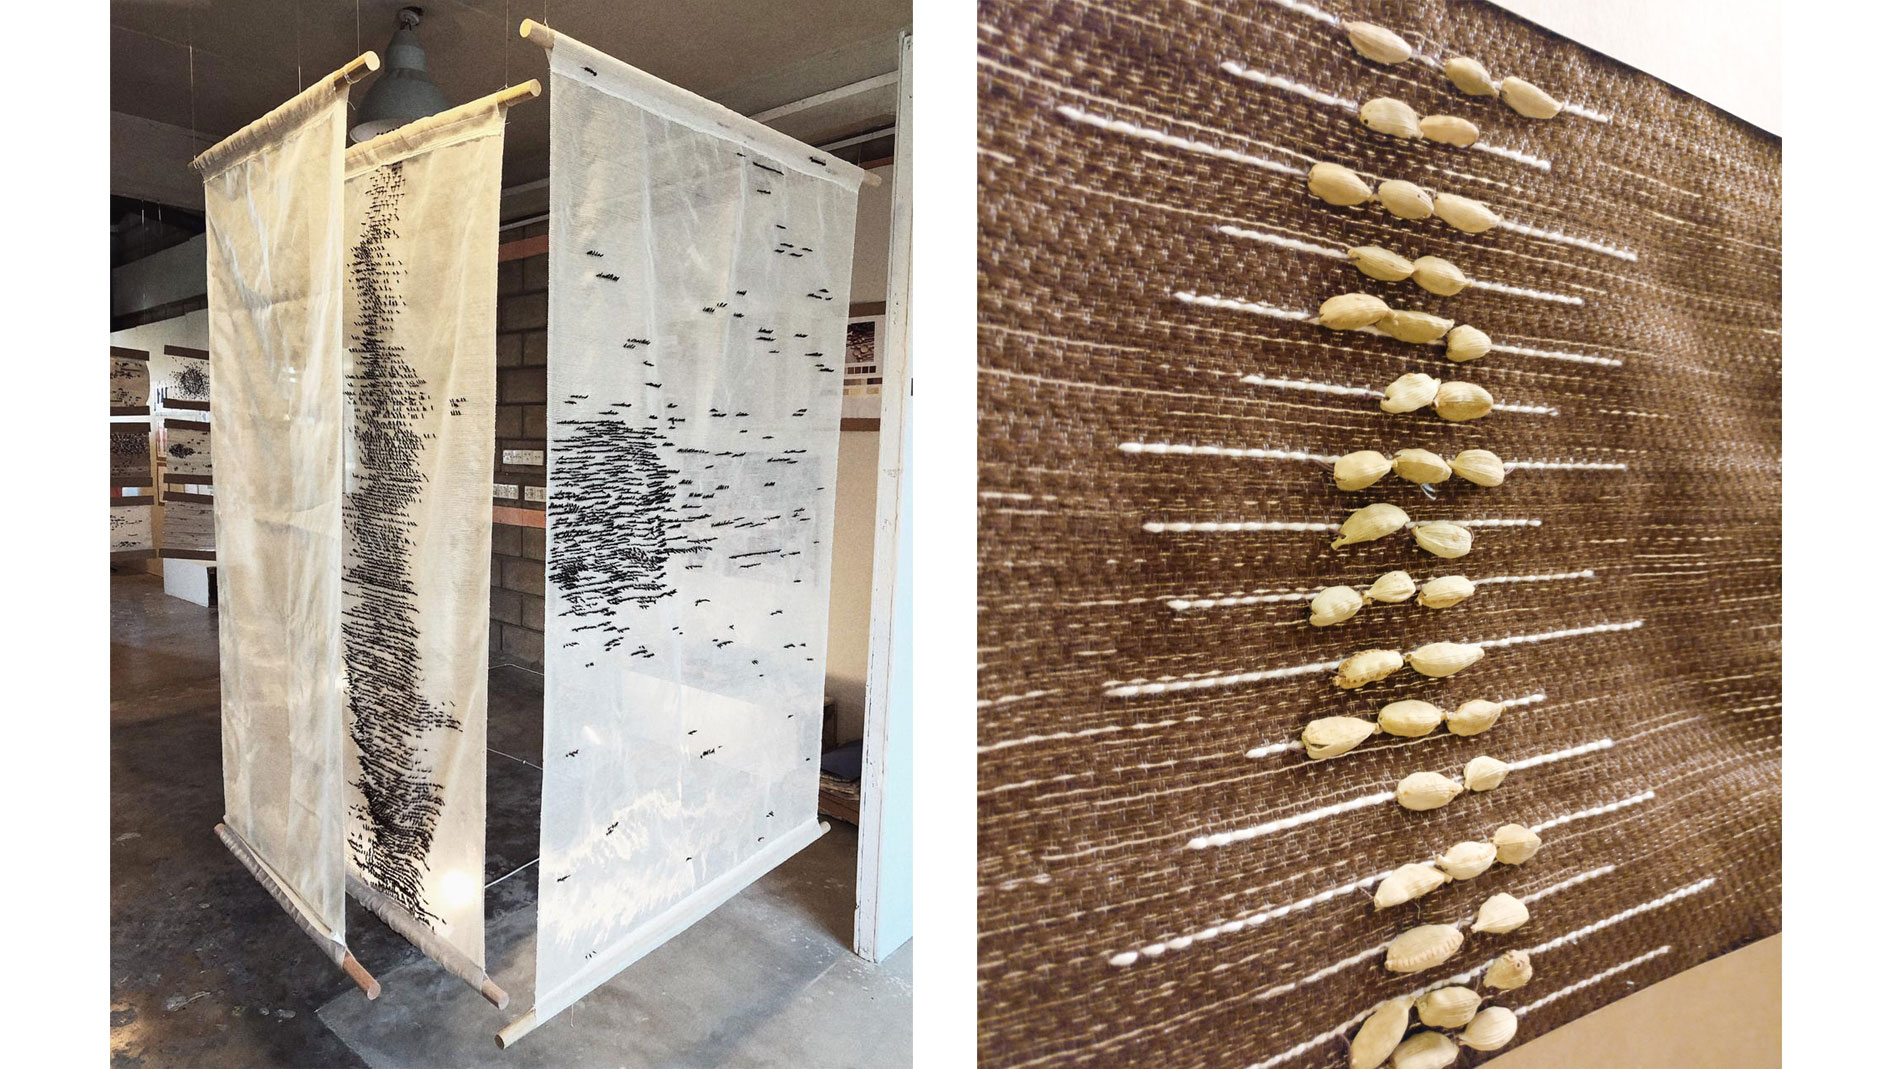 """Aromatic Screens"" by Hibba Saqib from the Indus Valley School of Art and Architecture, Pakistan"